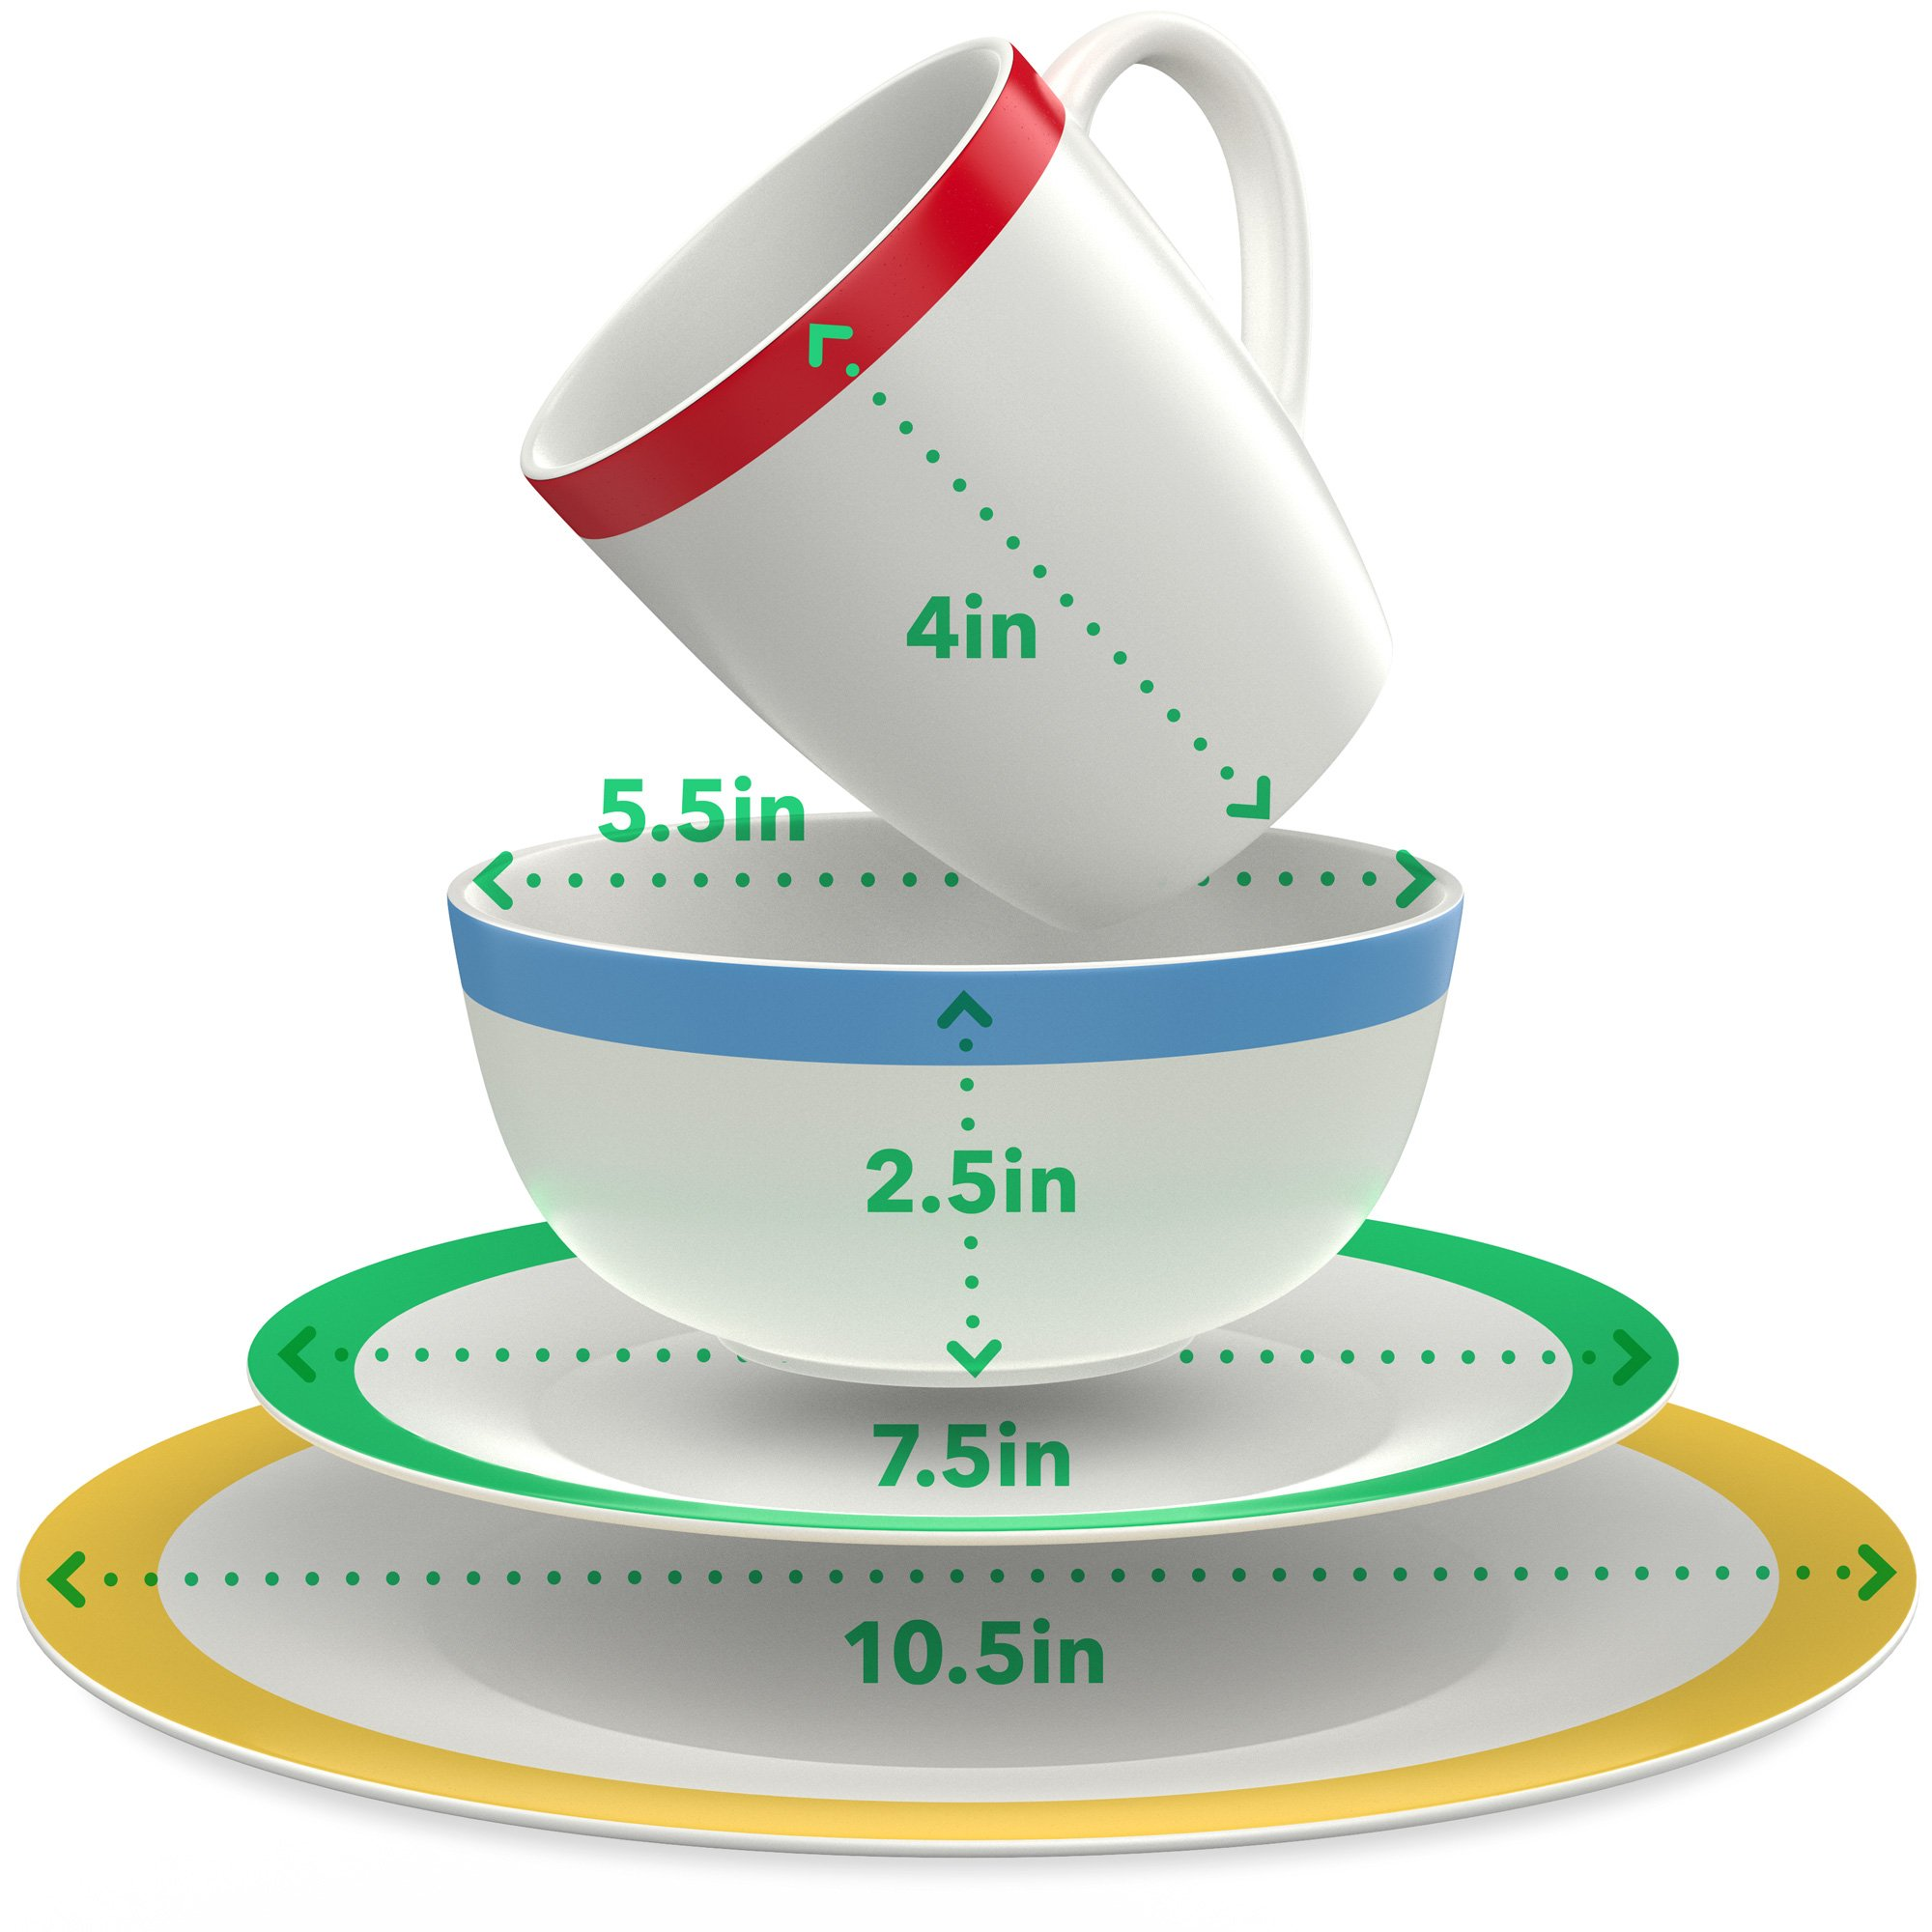 Vremi 16 Piece Dinnerware Set Service for 4 - Round Porcelain Dinner Plates Bowls Mugs and Dessert Dishes - Casual White Dinnerware with Colored Stripe Trim - Microwave and Dishwasher Safe by Vremi (Image #2)